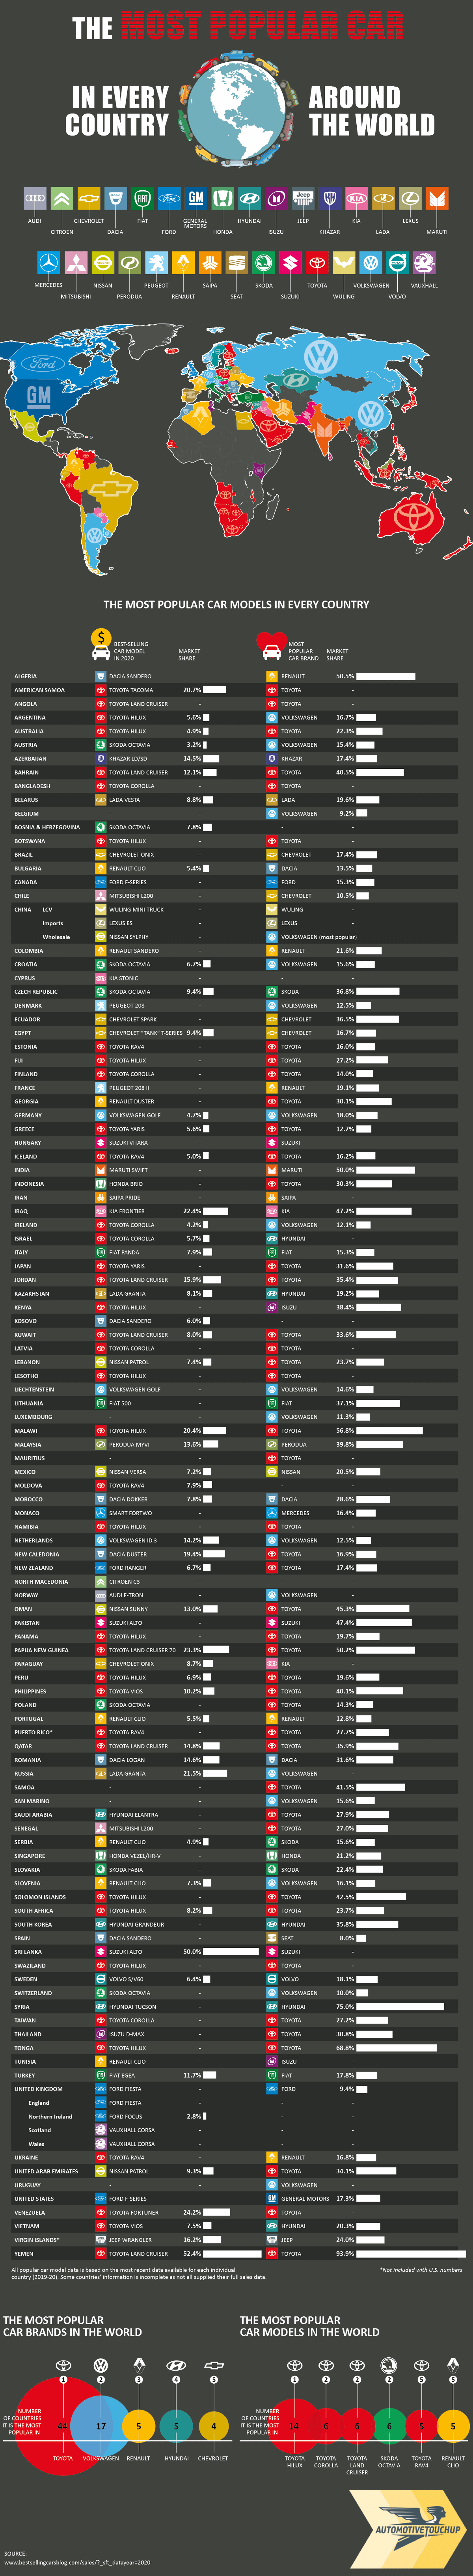 What is the Most Popular Car in Every Country Around the World?